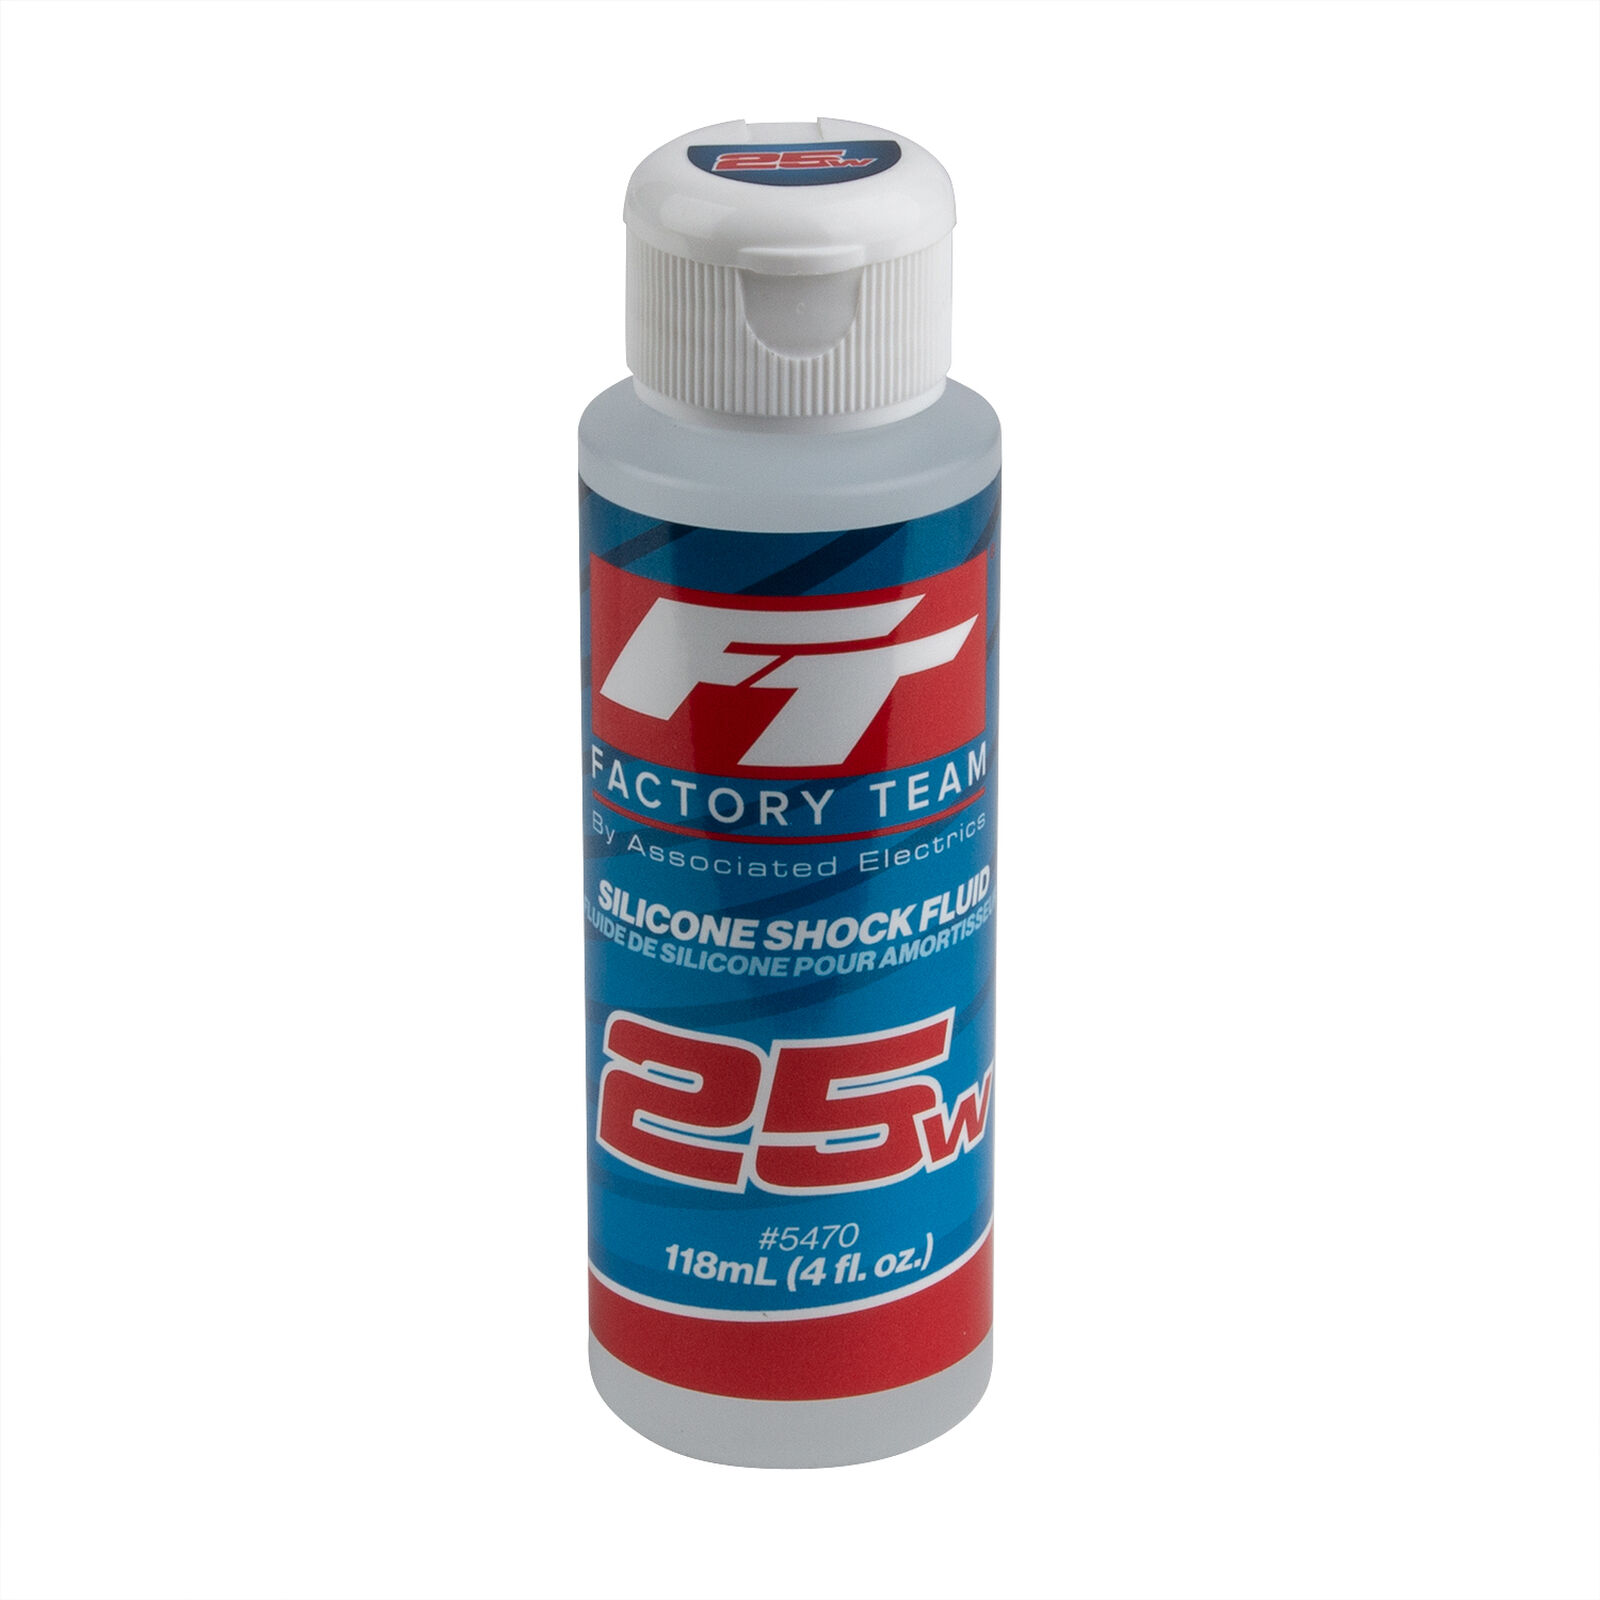 FT Silicone Shock Fluid, 25wt (275 cSt)